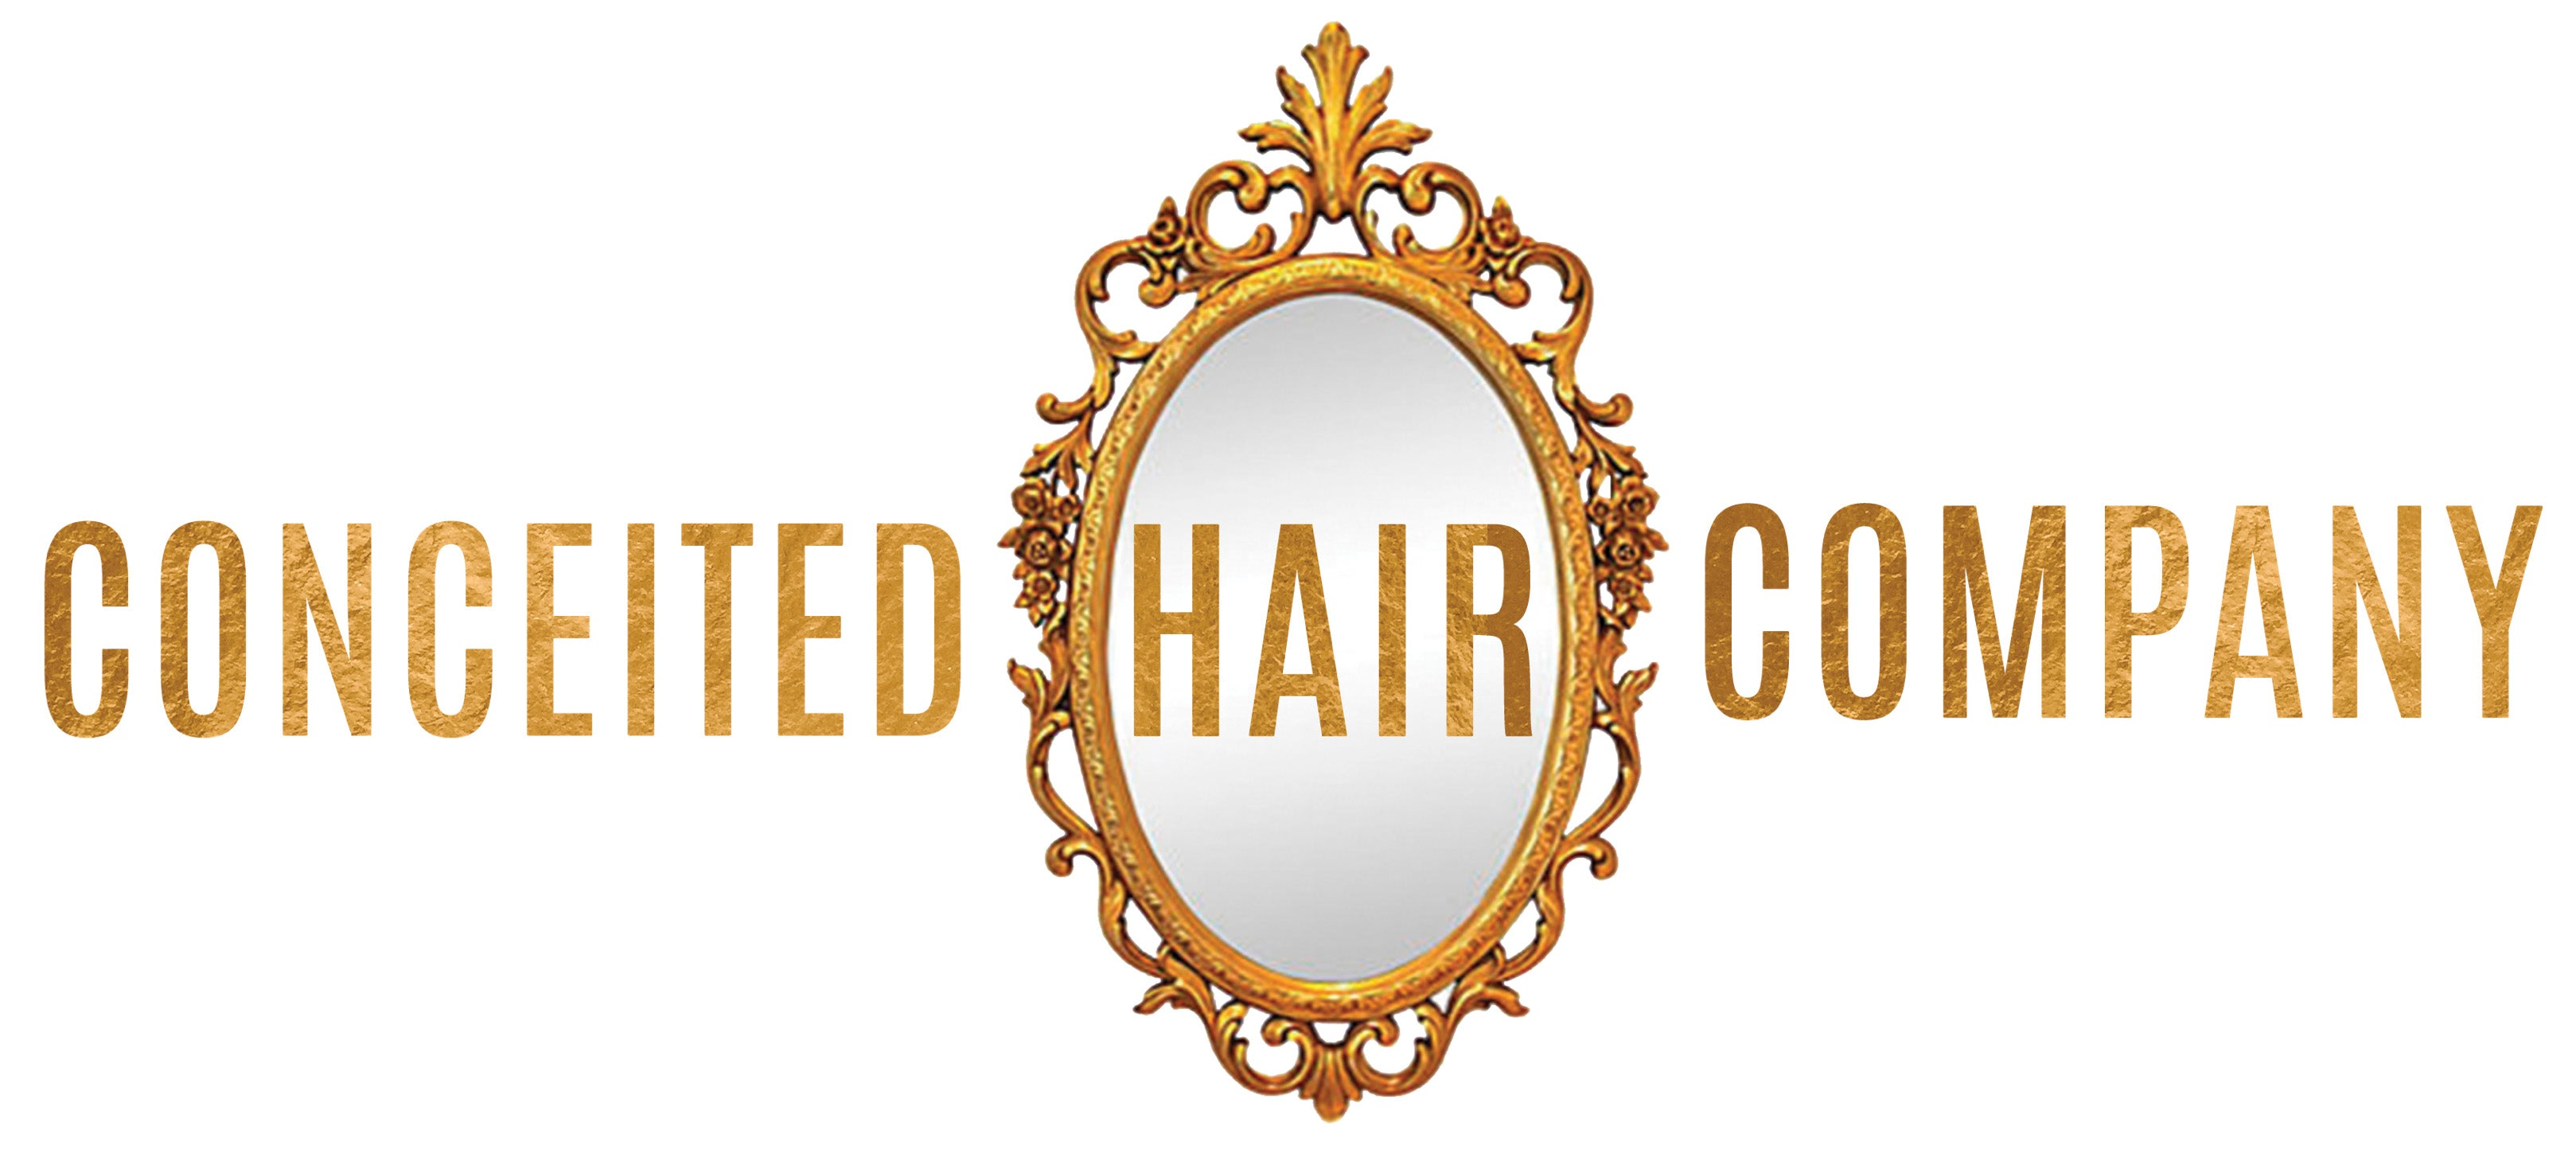 Conceited Hair Company